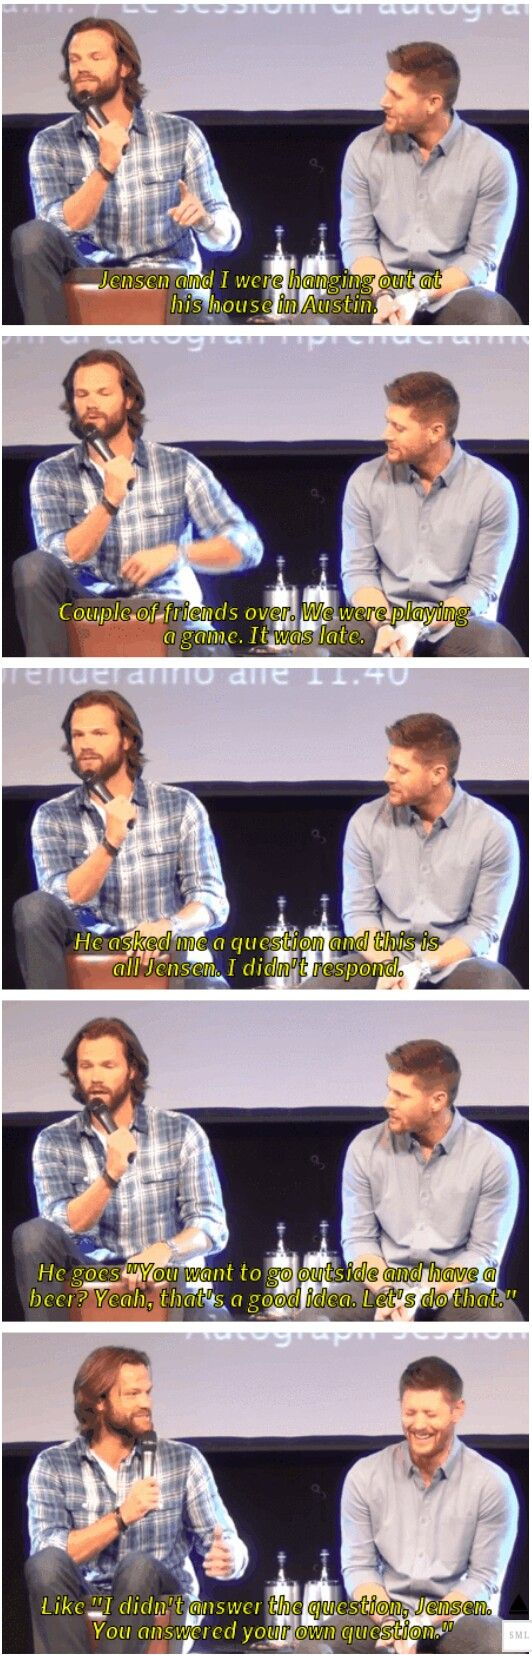 Jared talking about how Jensen carries on both sides of a conversation.